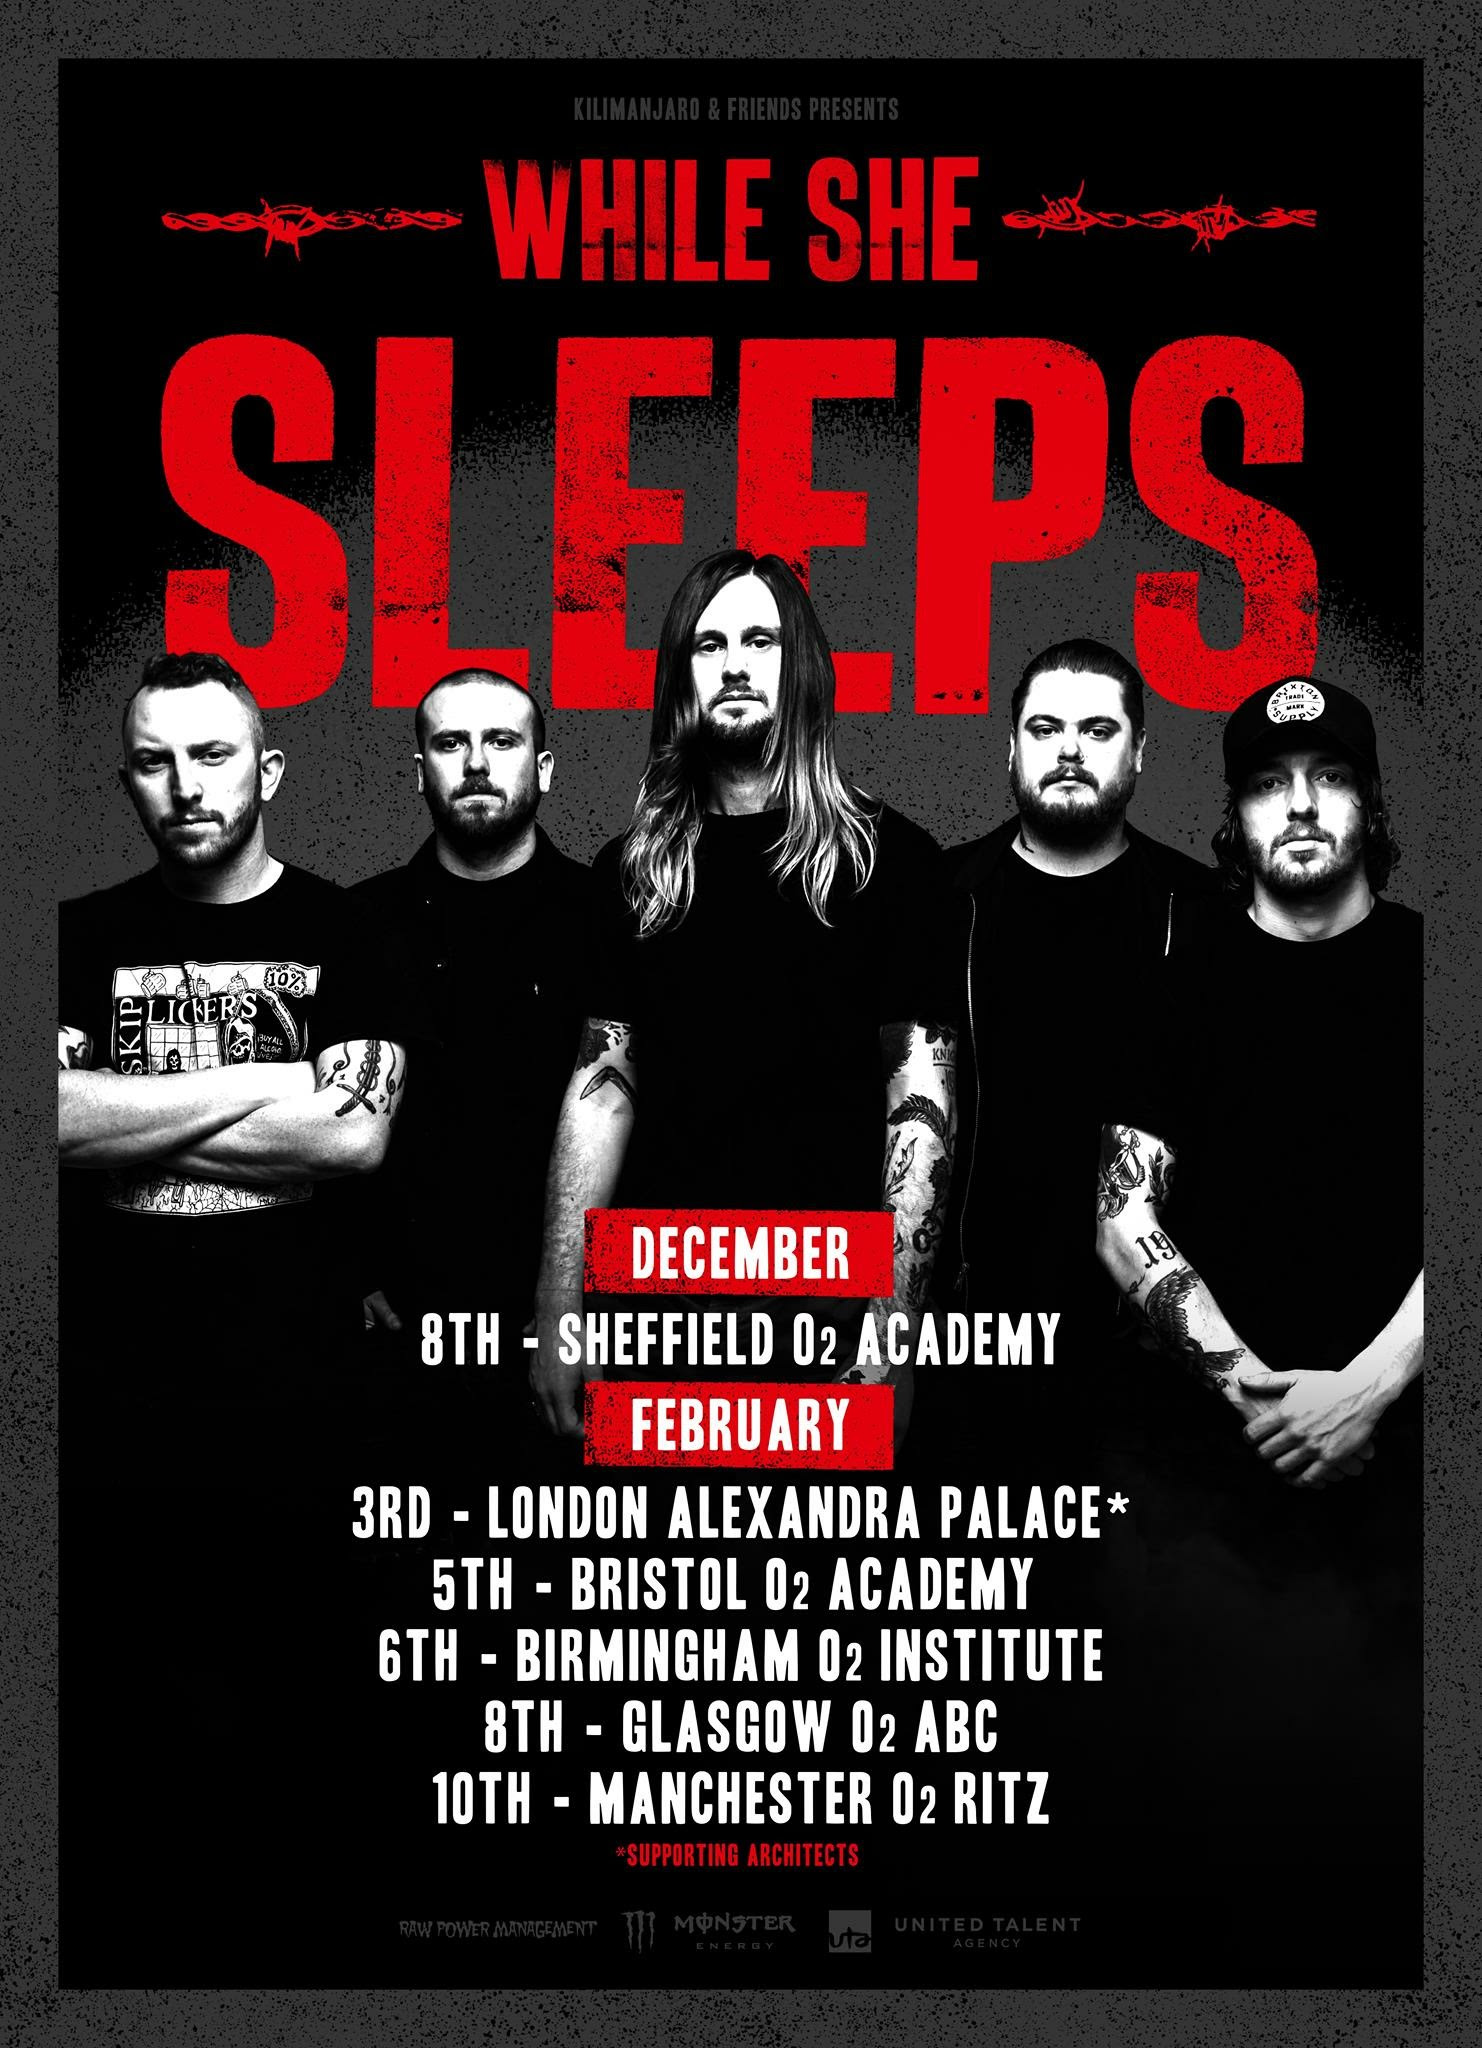 While She Sleeps Uk Tour Support